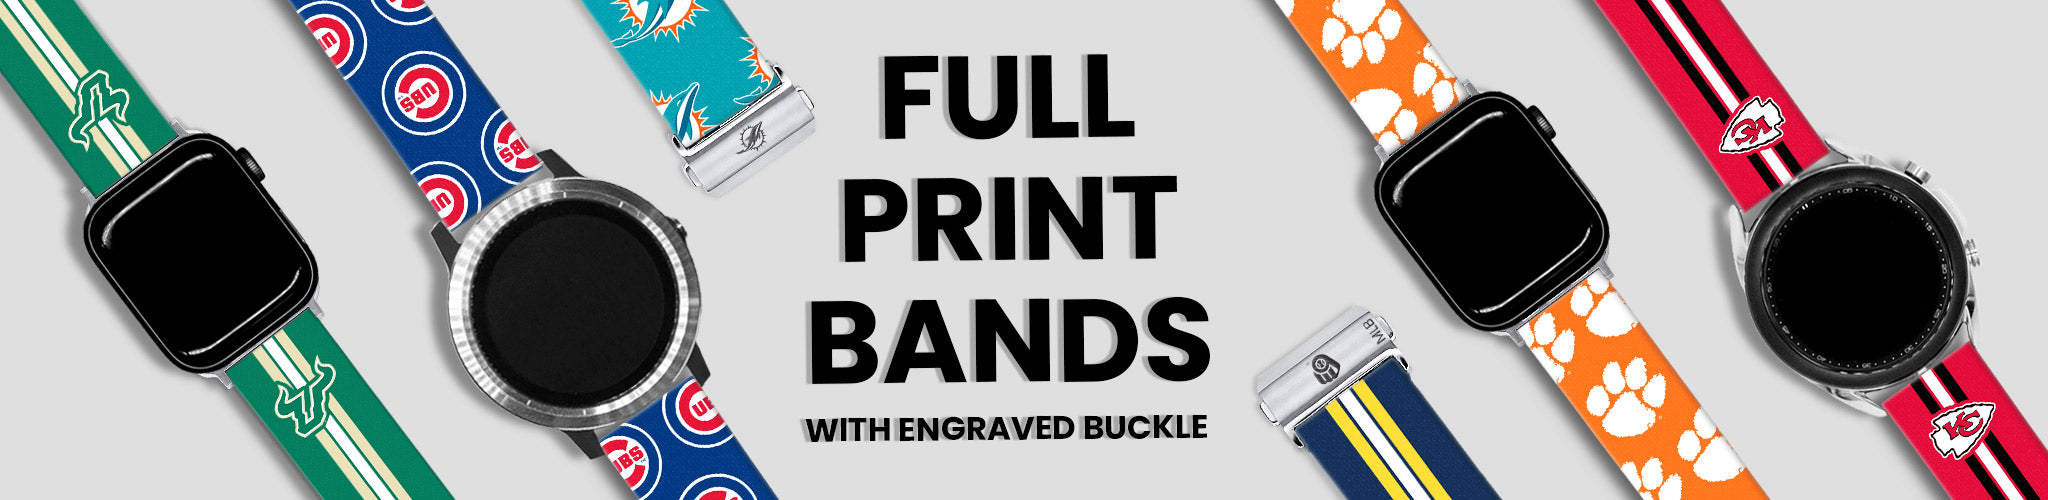 Full Print Bands With Engraved Buckle